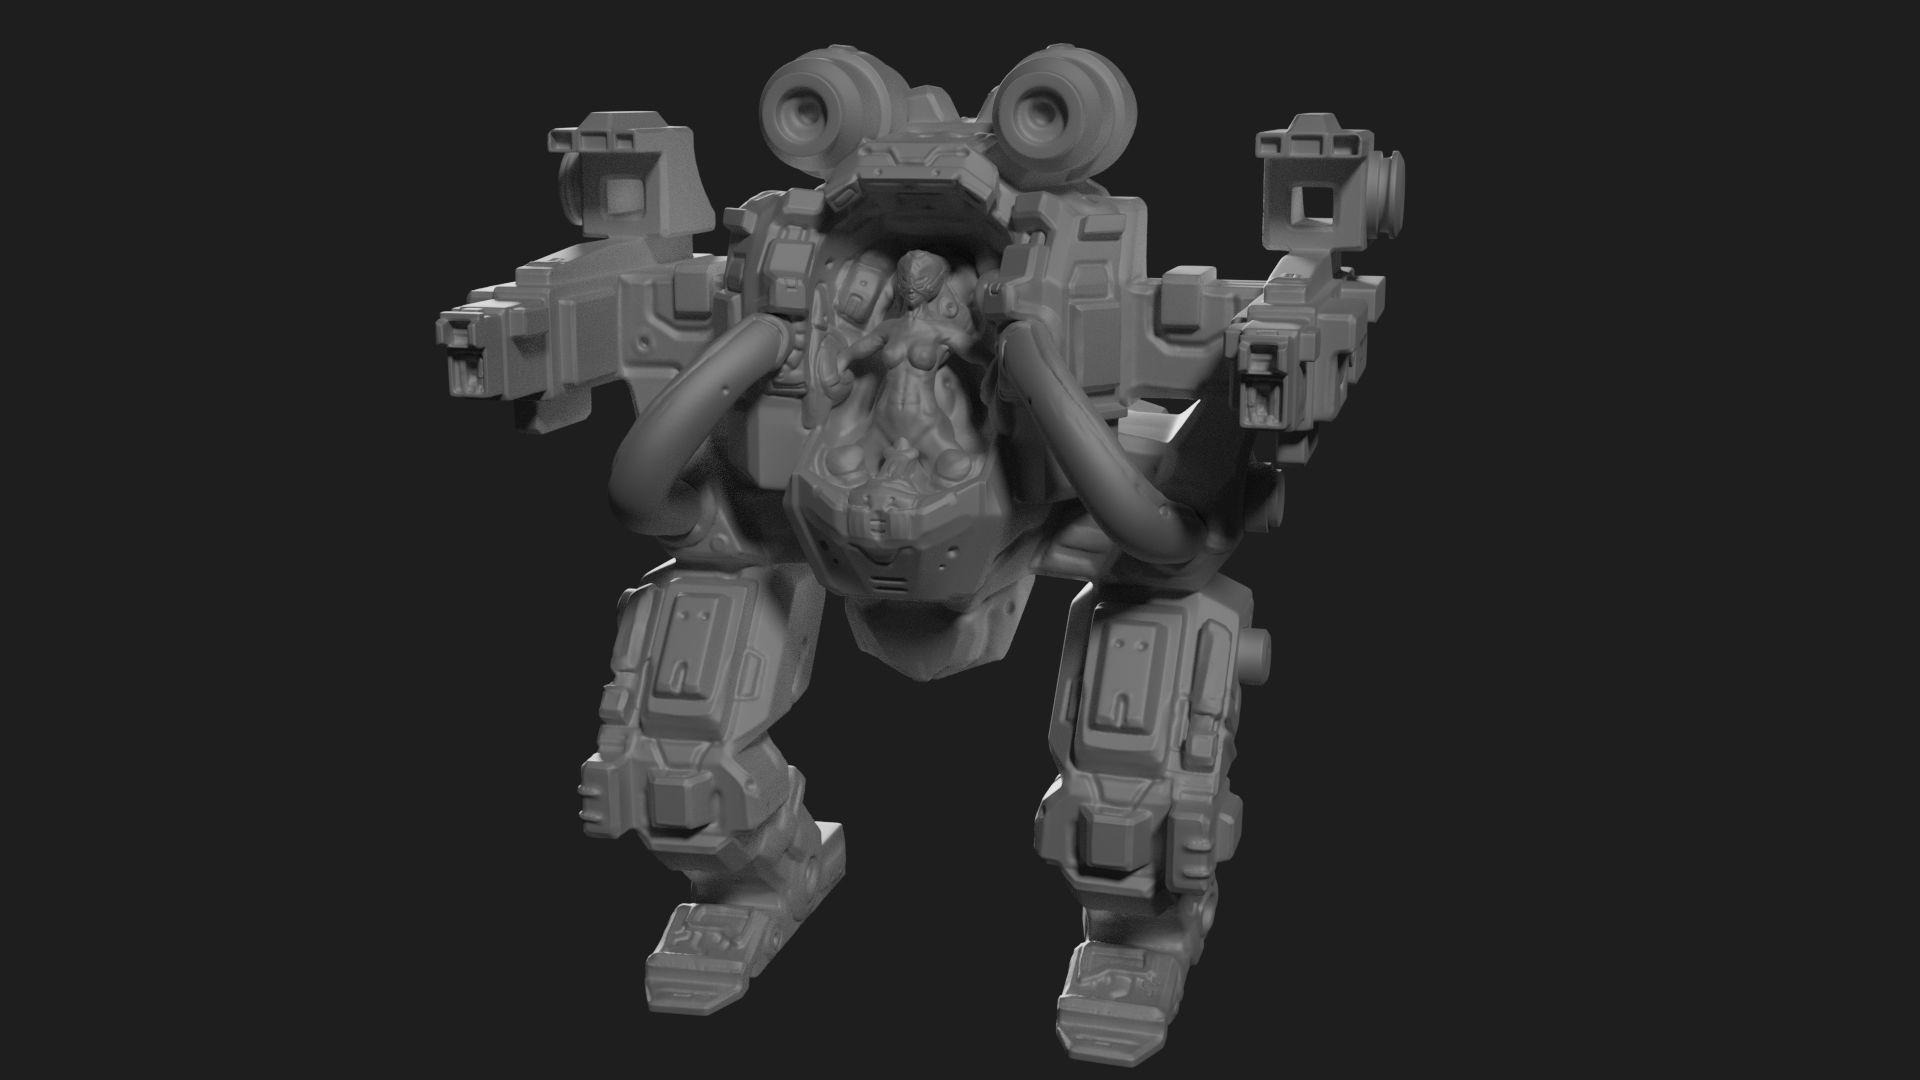 High poly model of mech with girl pilot